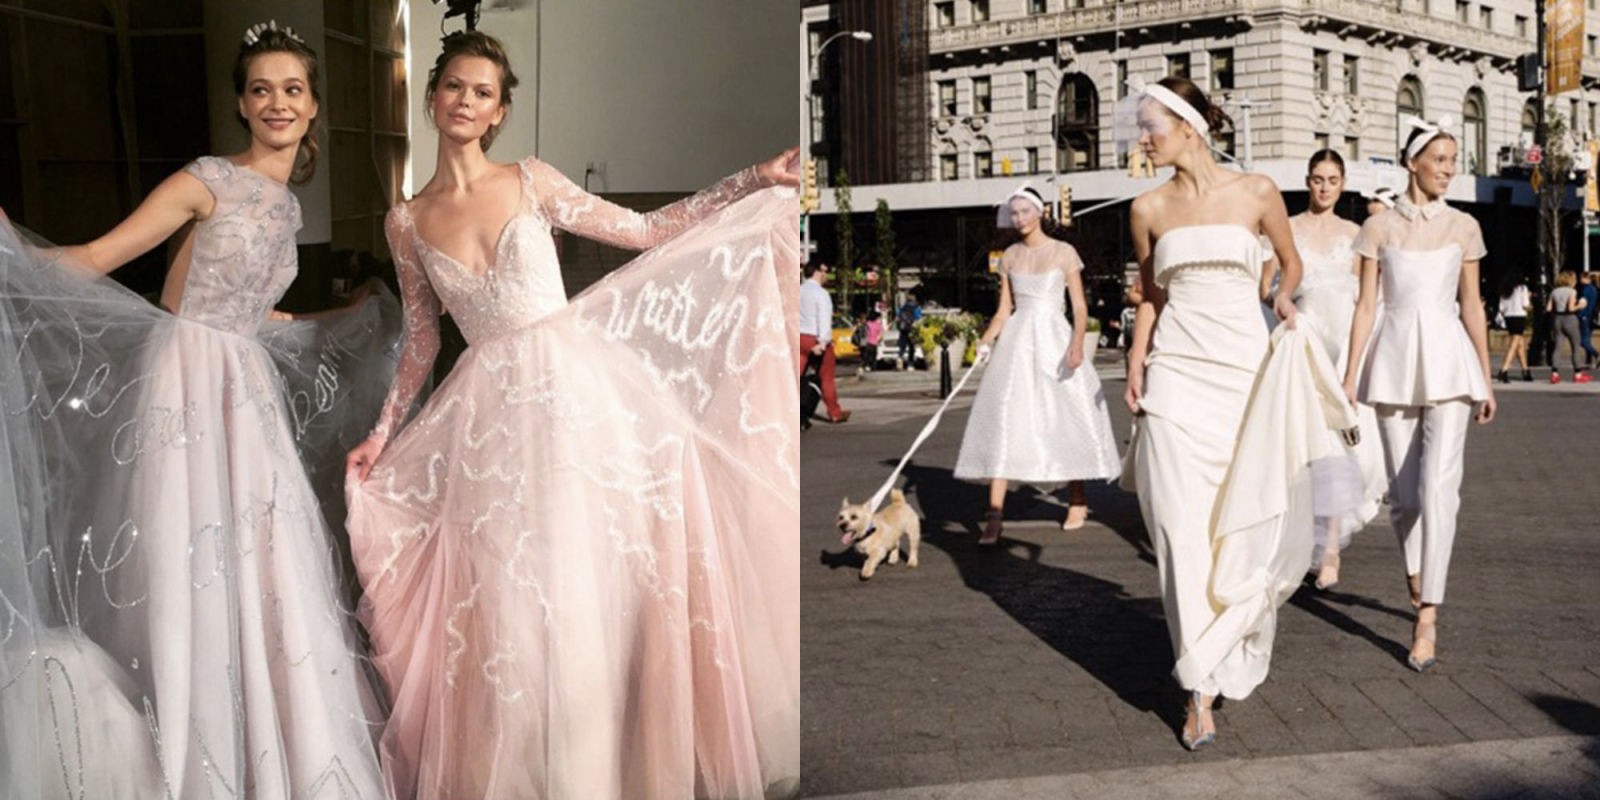 The Most Beautiful Wedding Dresses From Fall 2017 Bridal Fashion Week